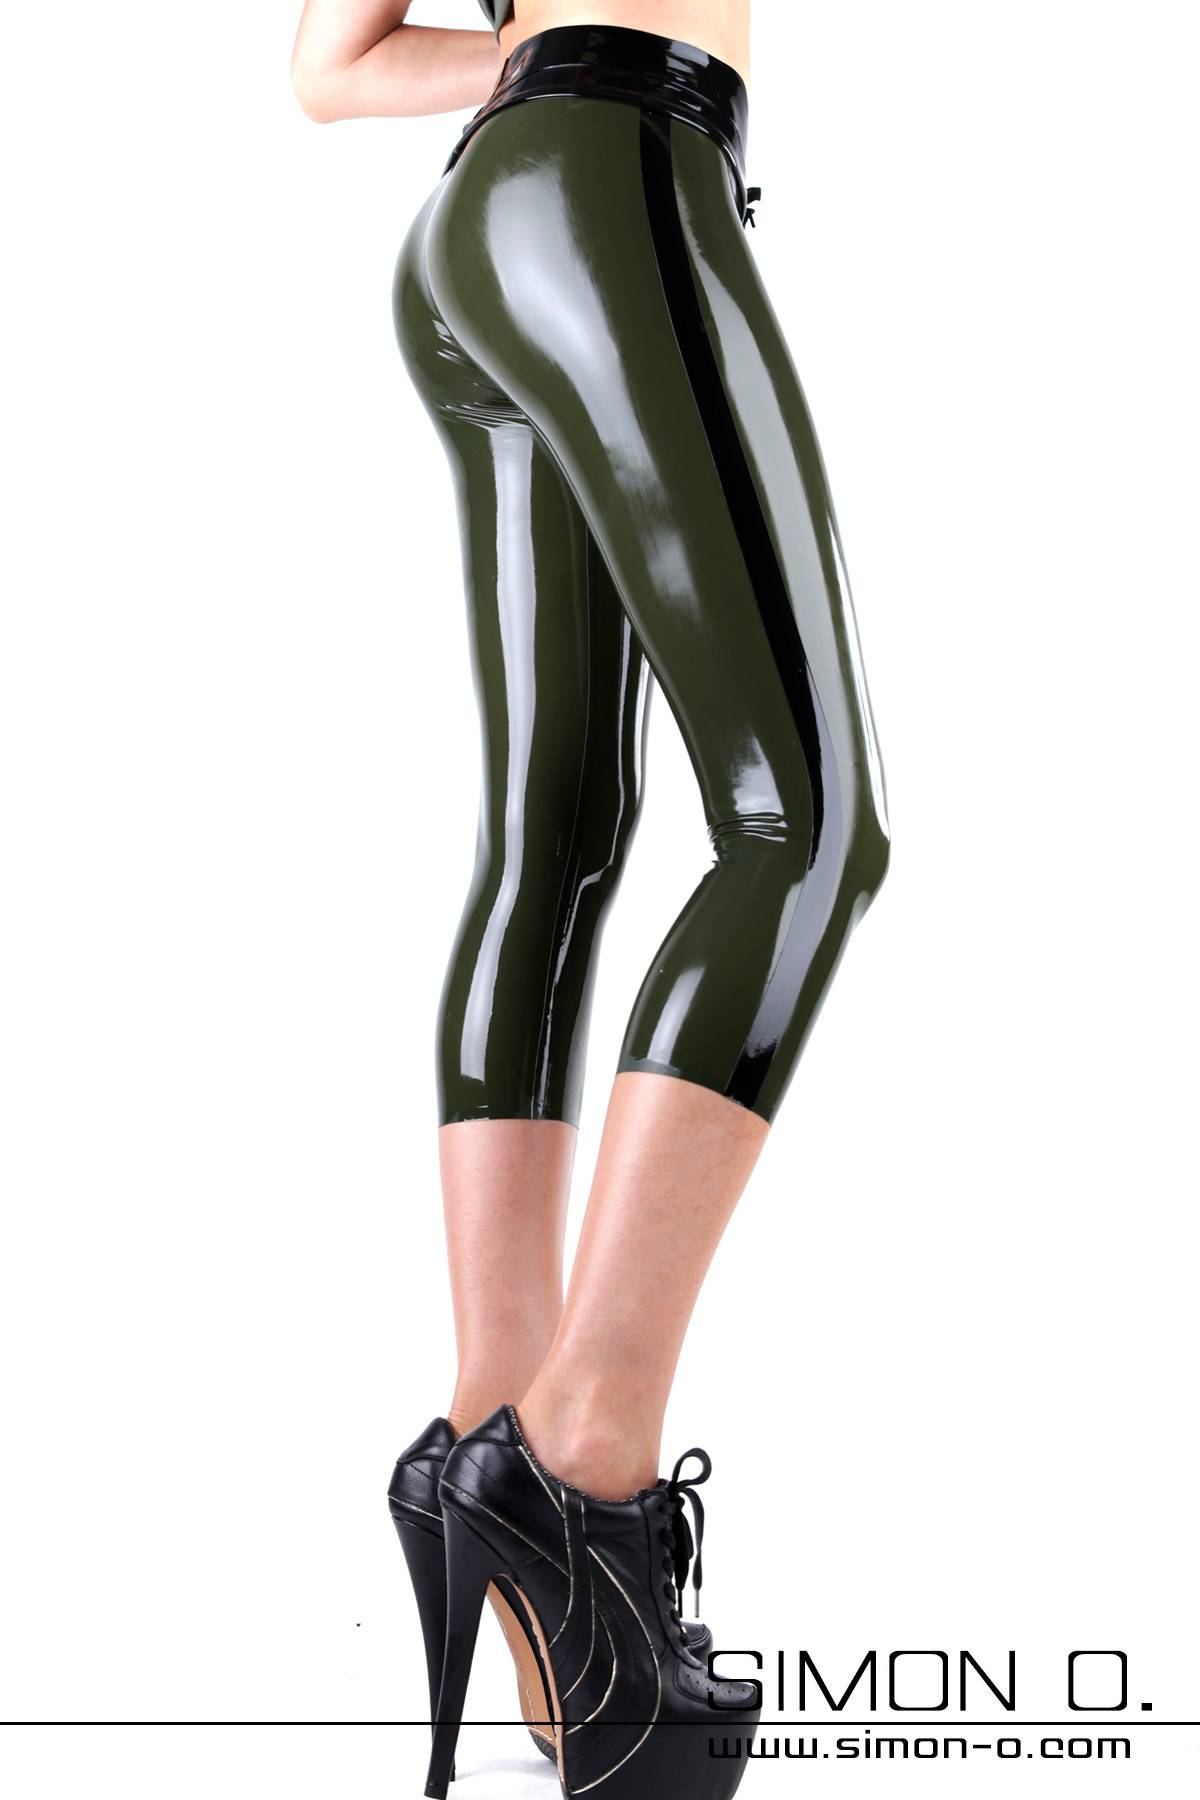 Three-piece latex leggings as streetwear and clubwear These latex leggings show off your legs leaves a lasting impression with its style which is modeled …